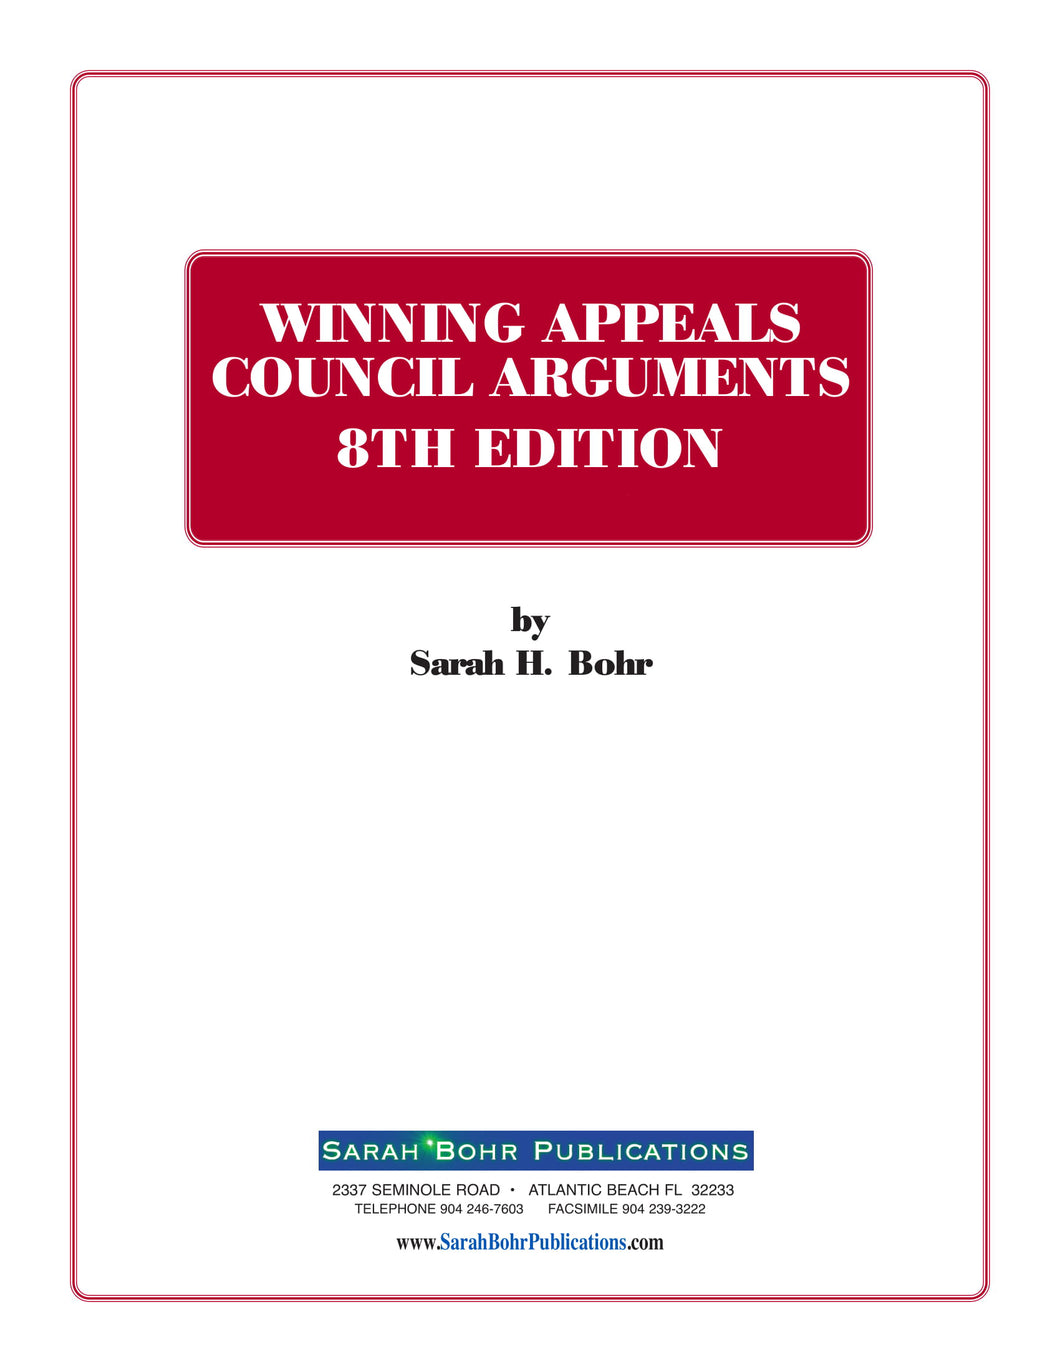 Winning Appeals Council Arguments 8th Edition (Digital Download + Physical Book)